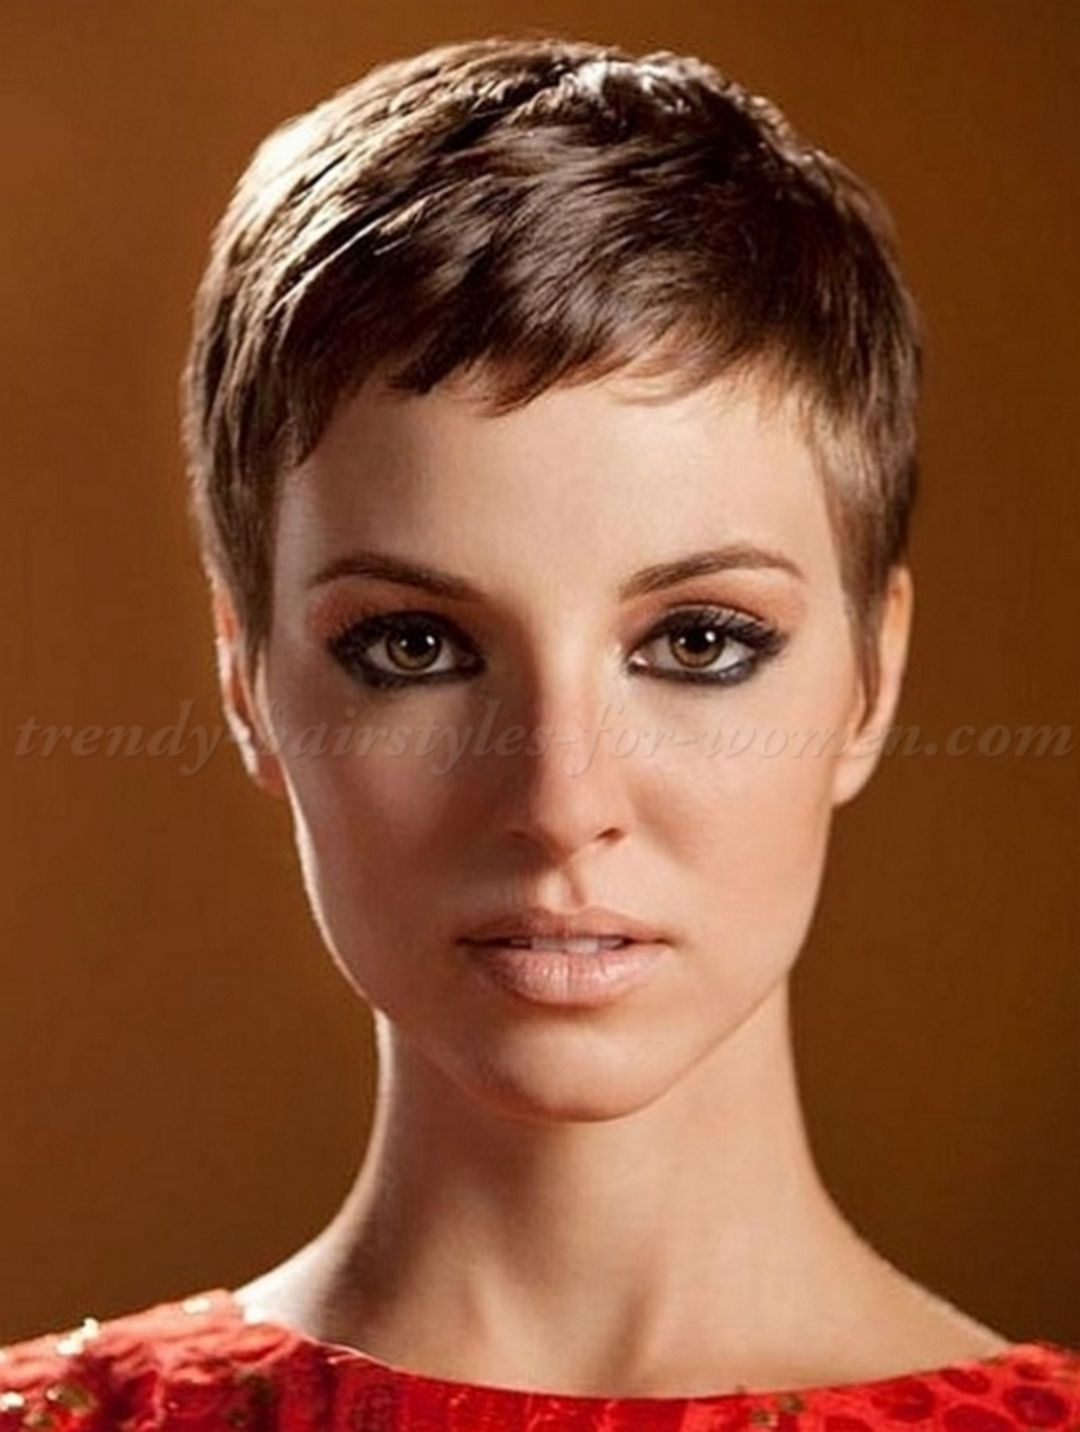 20+ Fantastic Short Pixie Hair Ideas For Beauty Wo